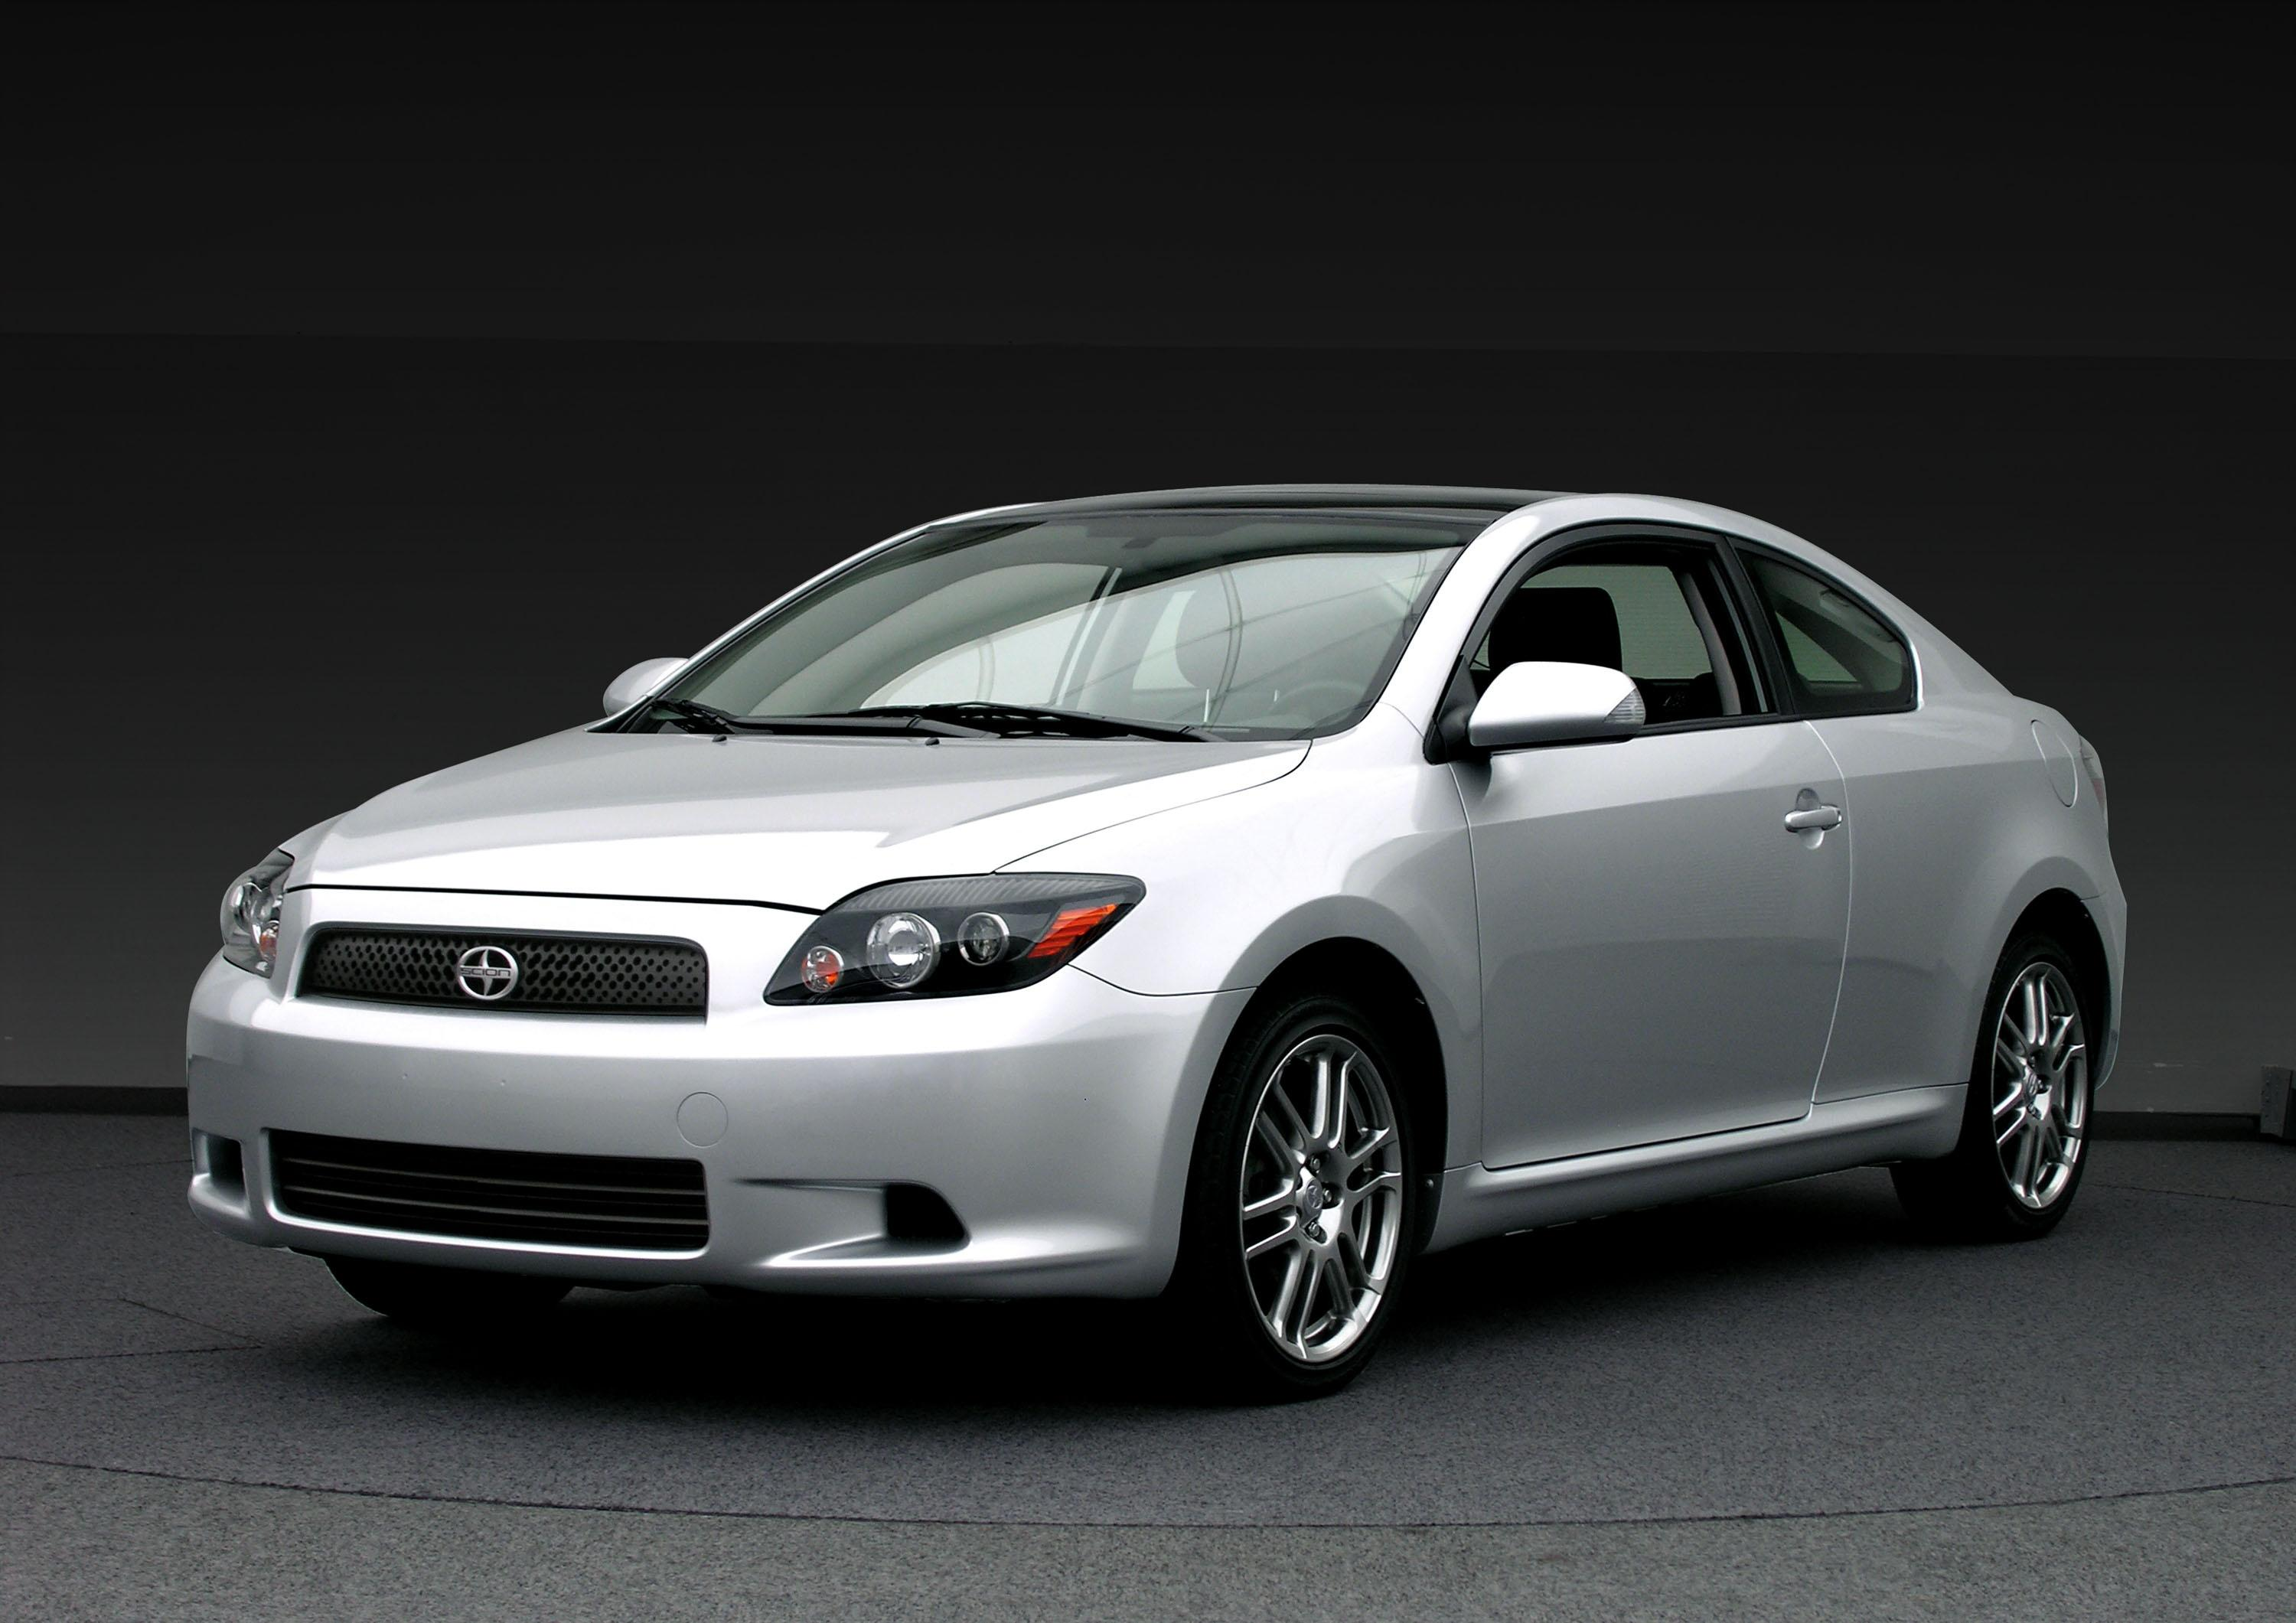 2009 Scion TC Sports Coupe Review - Top Speed